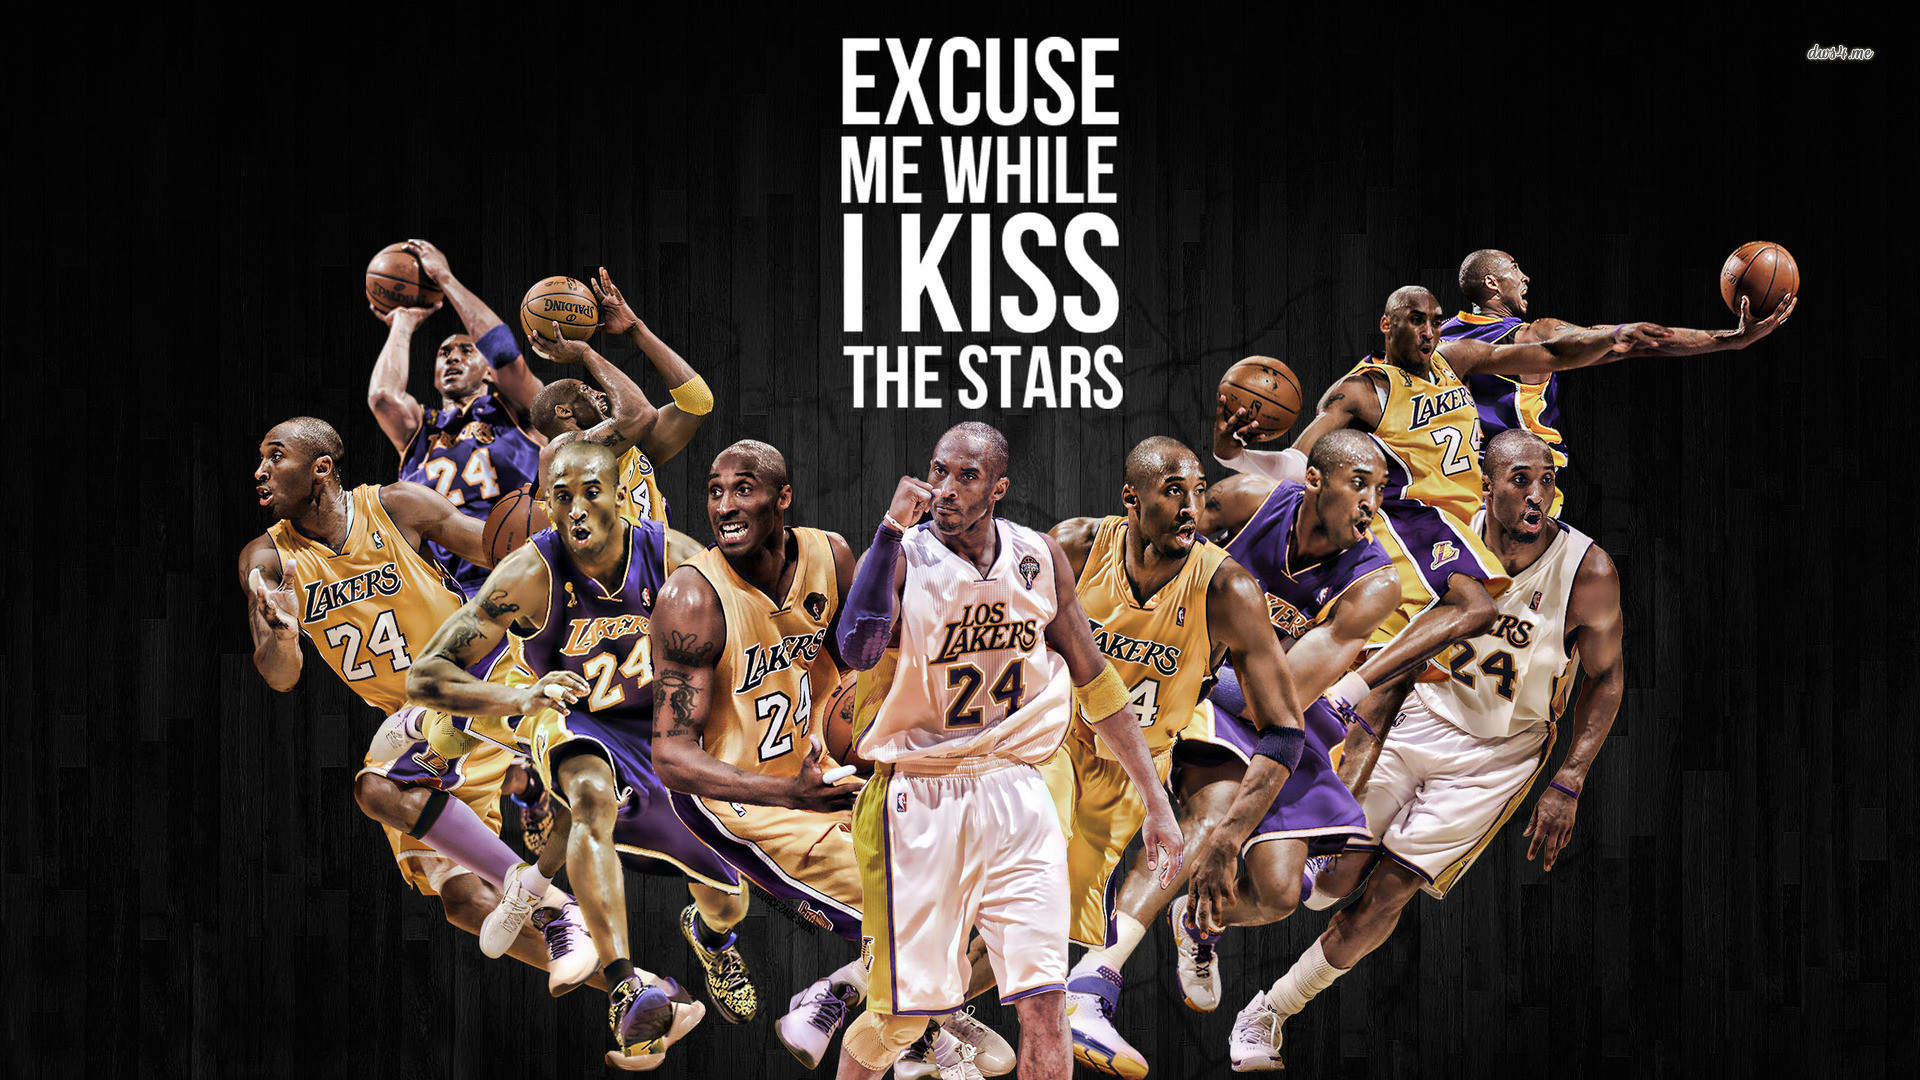 Kyrie Irving Wallpaper 2013 Hd Basketball Players Wallpapers 71 Images